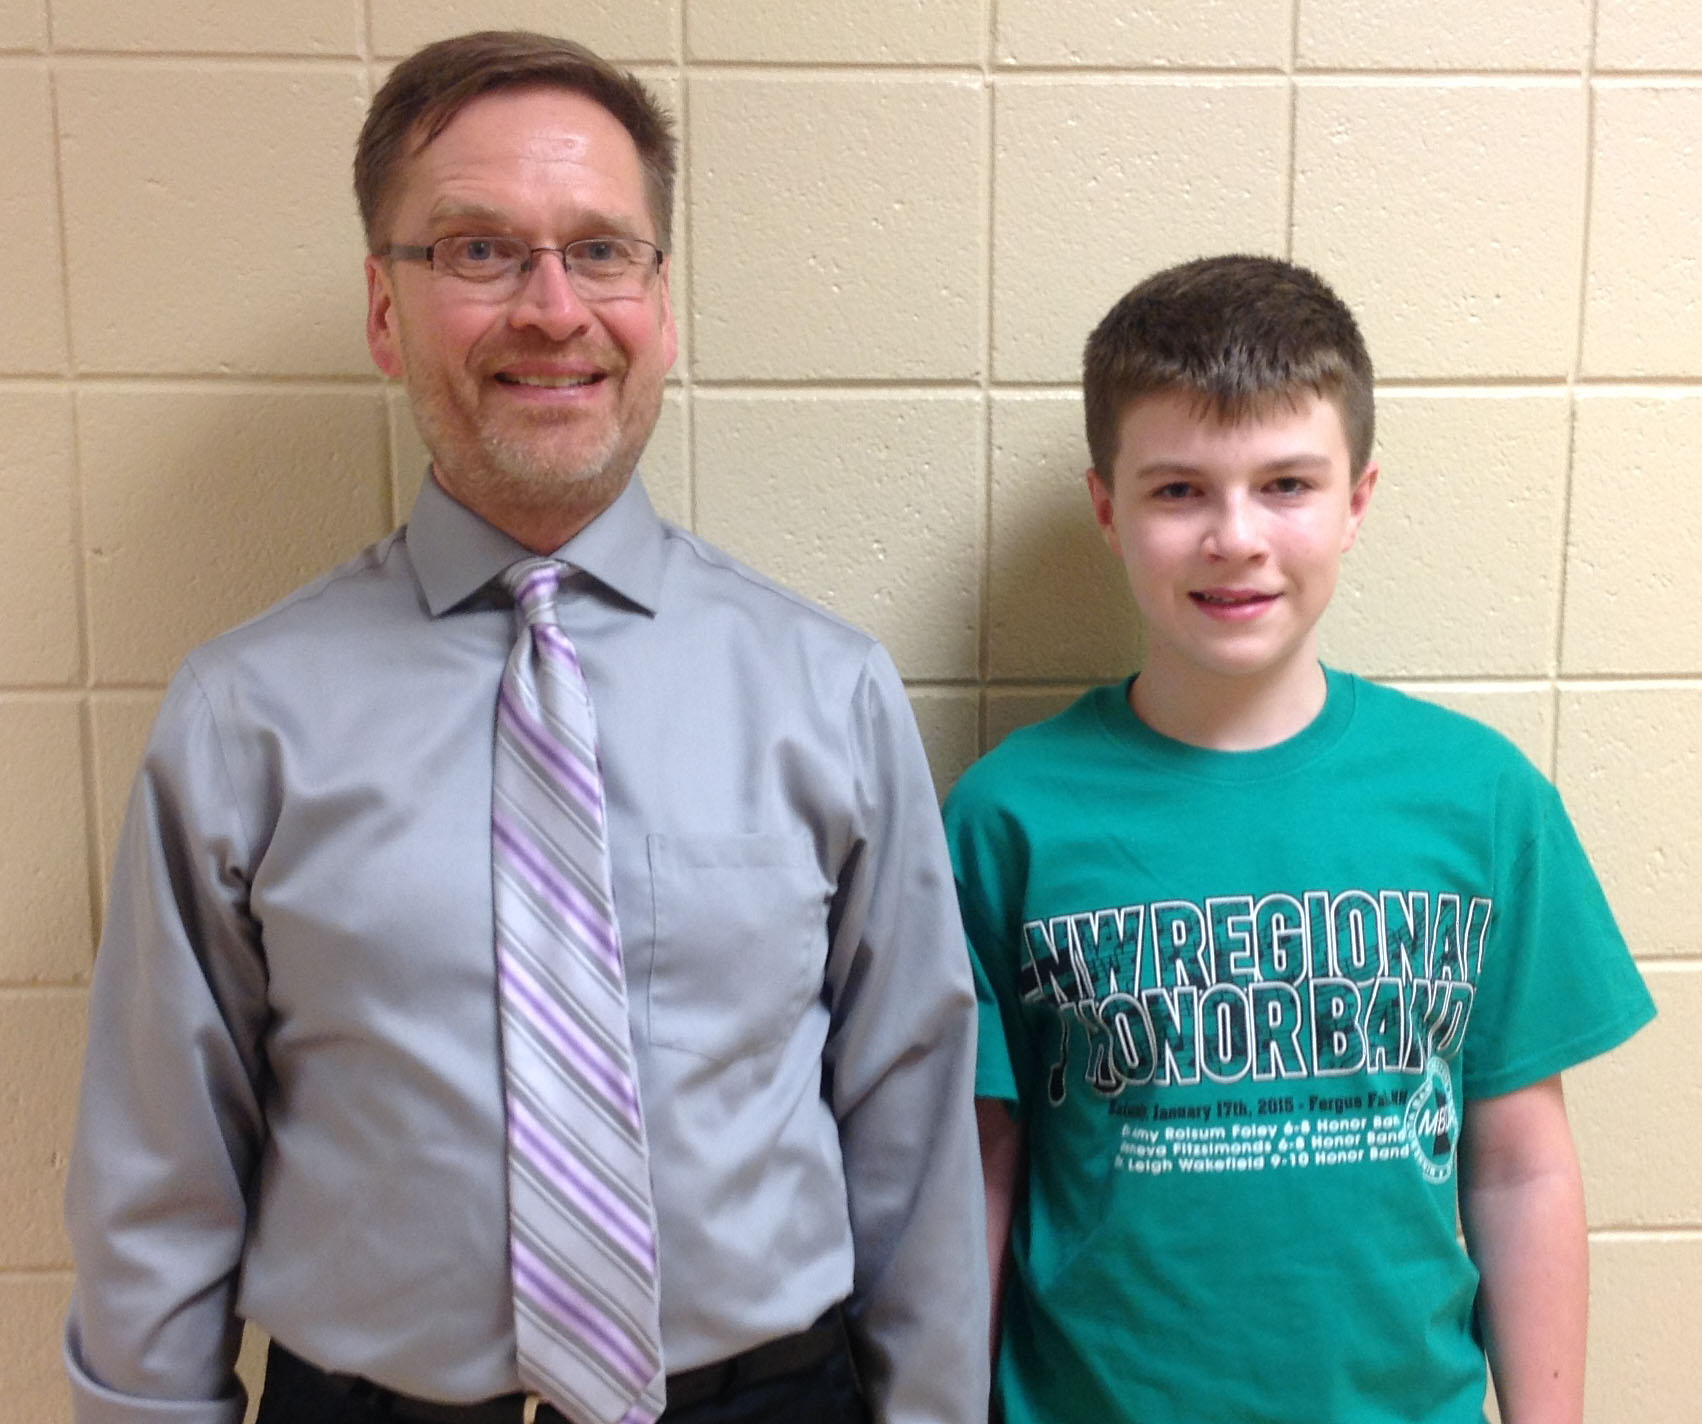 Grades 9-10 Green Band included WDC freshman Ryan Grendahl, right, with Dr. Leigh Wakefield, Band Director and Clarinet Instructor from Concordia College-Moorhead. (Photo courtesy of MBDA)